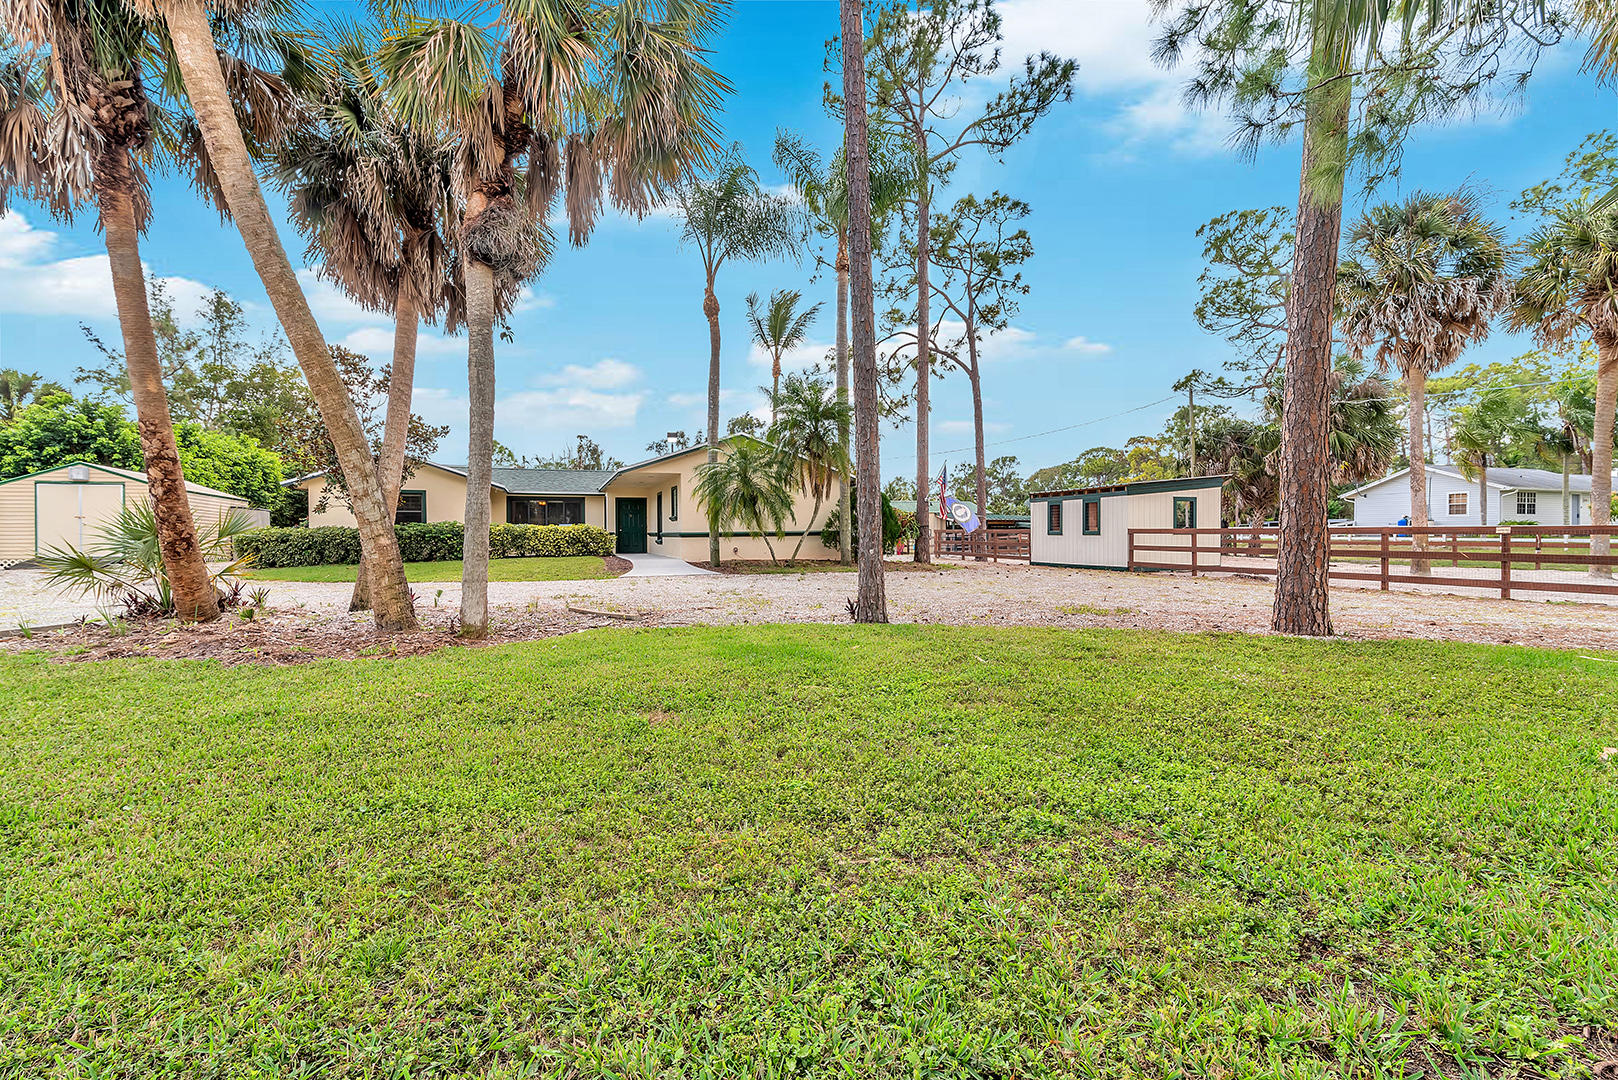 11096 60th Street, West Palm Beach, Florida 33411, 3 Bedrooms Bedrooms, ,2.1 BathroomsBathrooms,Single Family,For Sale,The Acreage,60th,RX-10504871